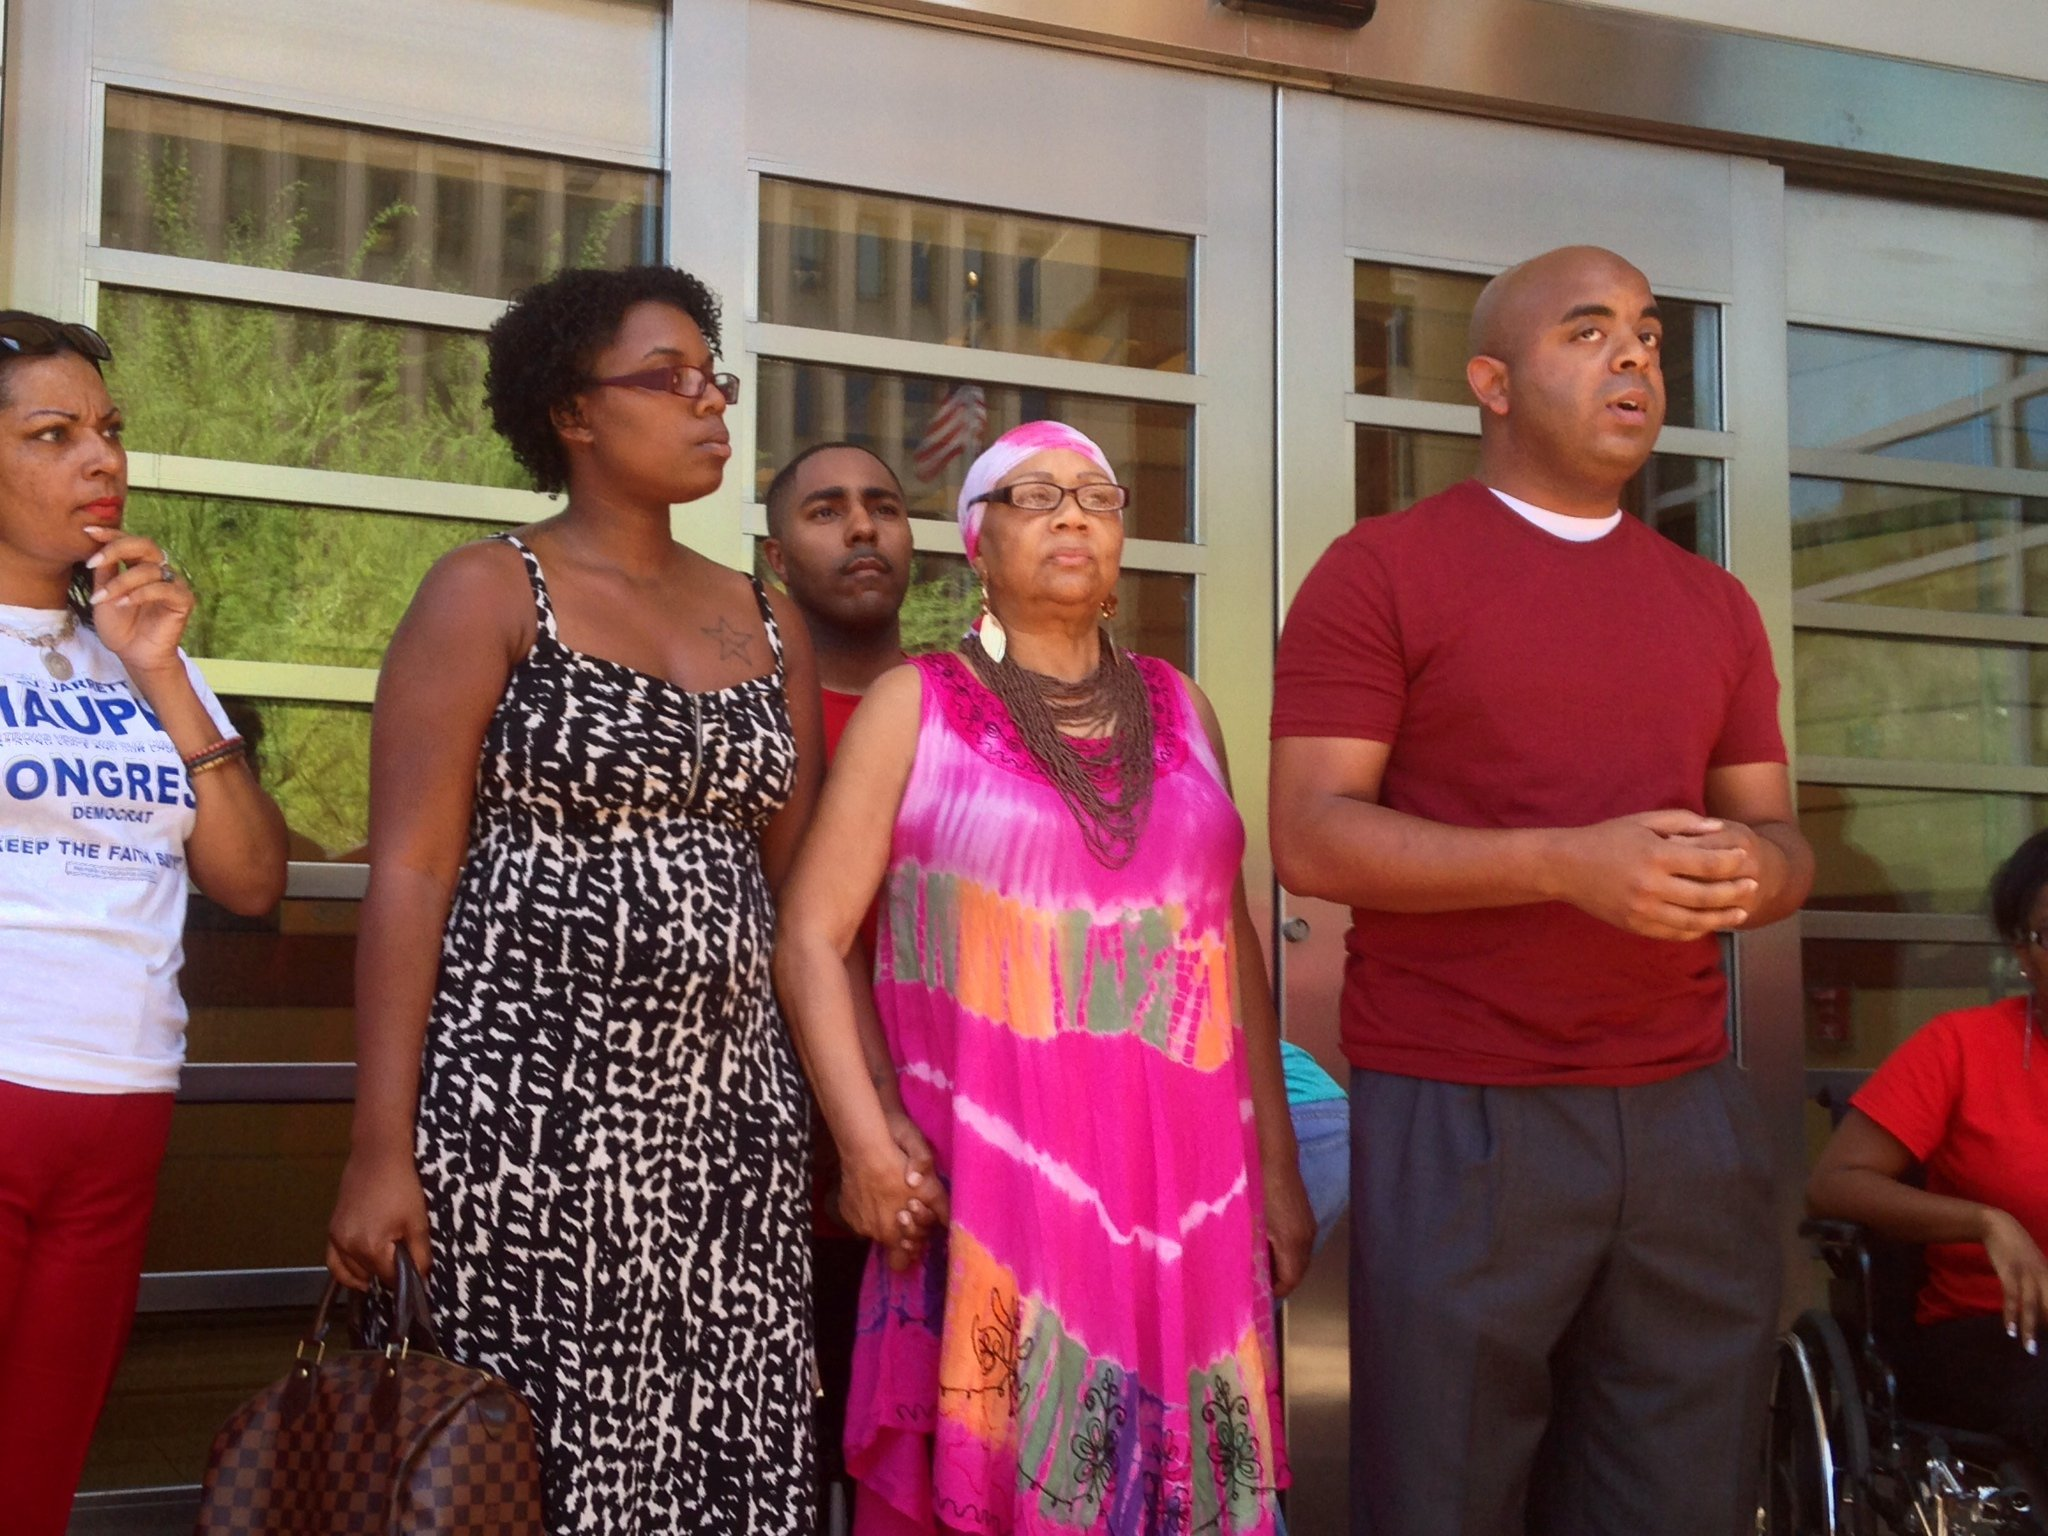 Demonstrators outside Phoenix City Hall. (Source: Christina Batson, cbs5az.com)